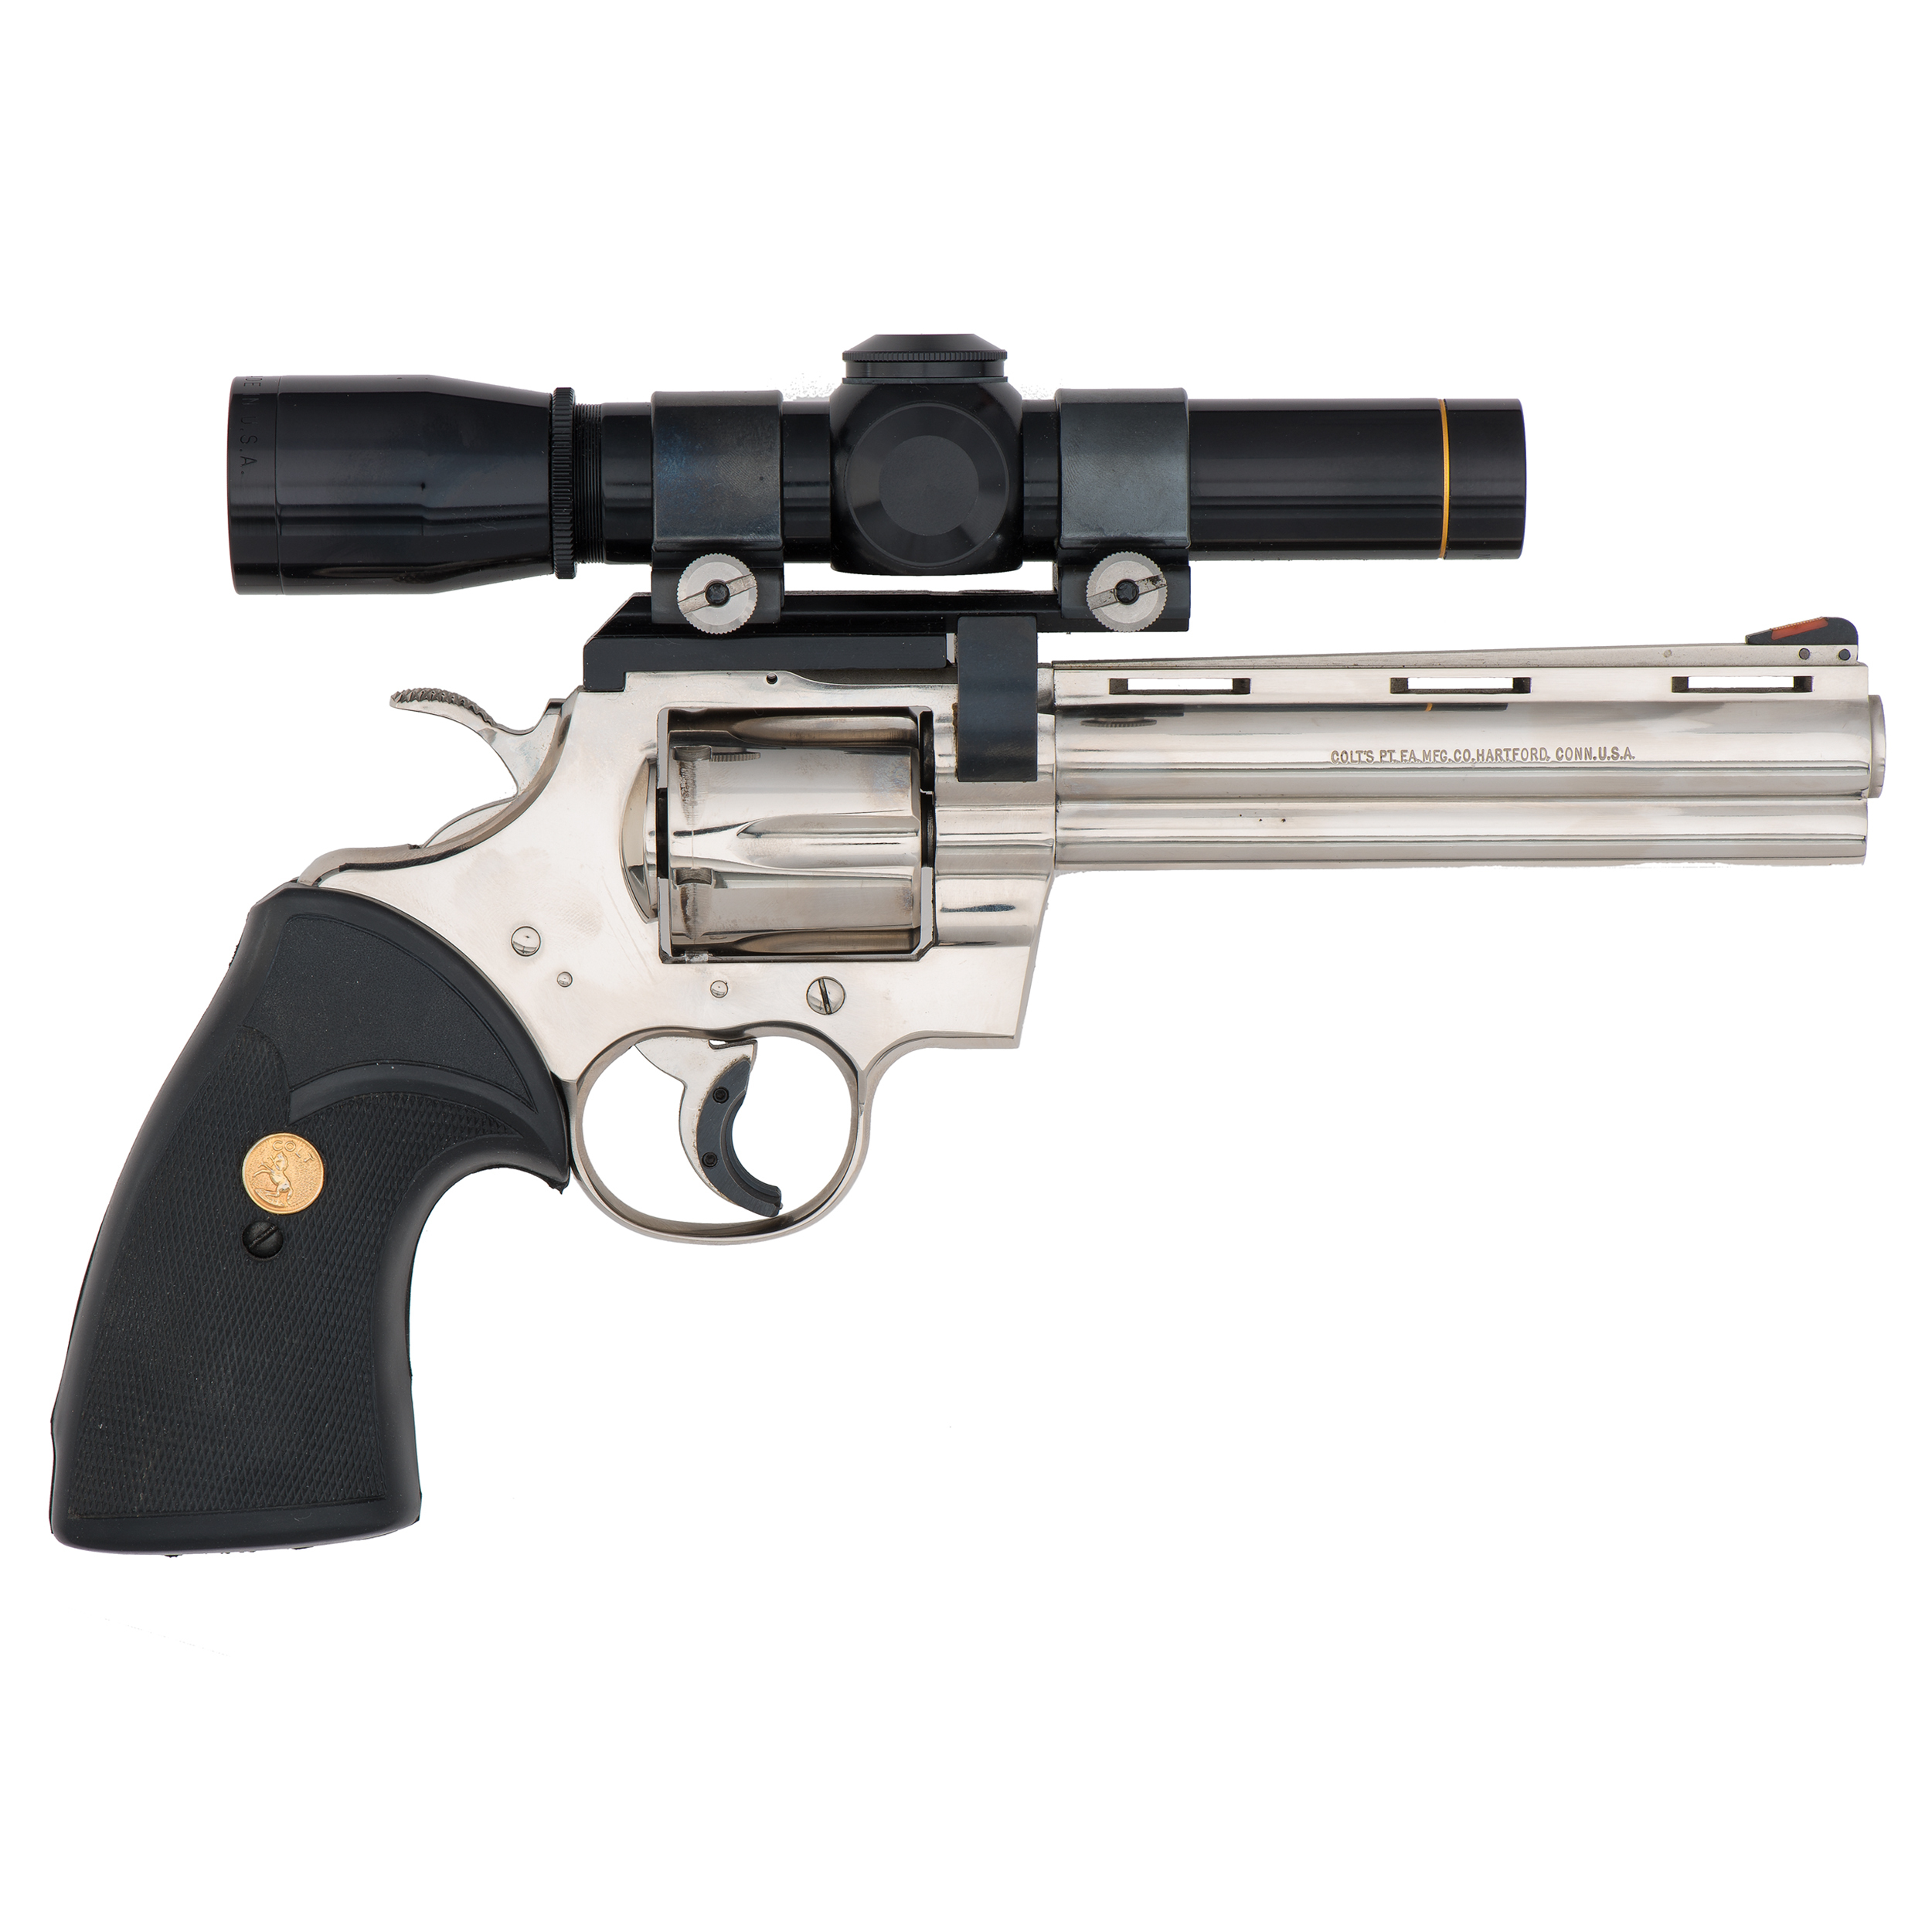 Colt Python Revolver with Scope | Cowan's Auction House: The